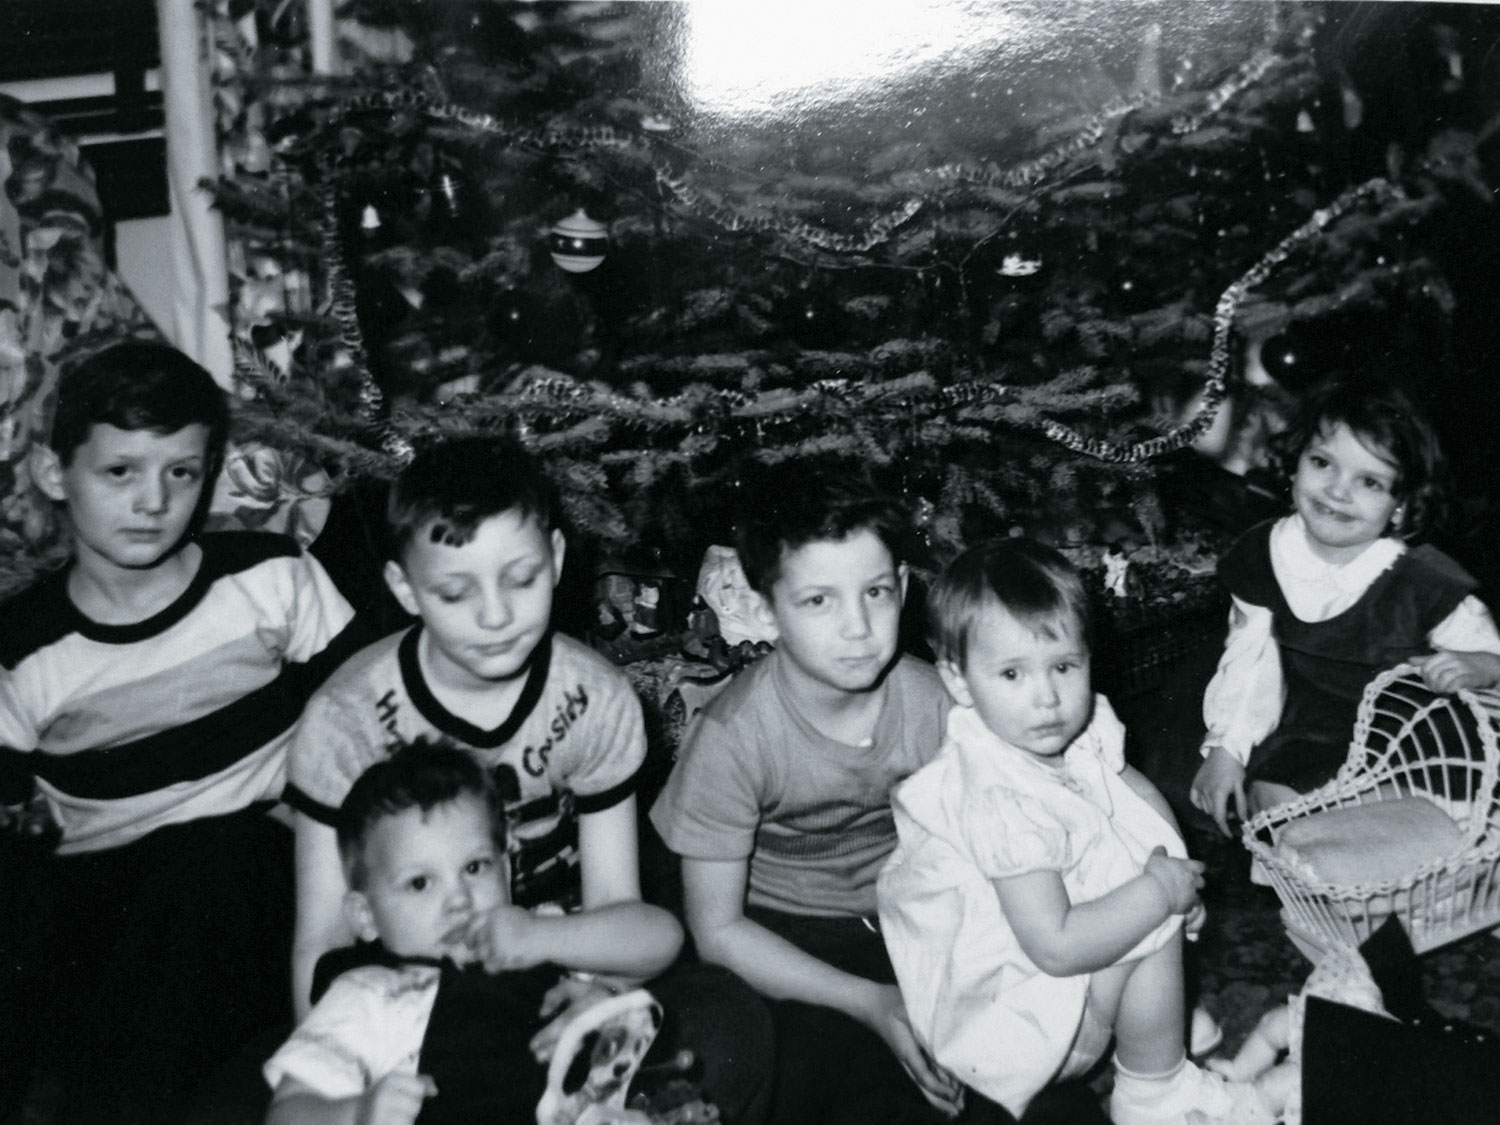 That's me (far right) with my younger brother and cousins on Christmas Day, 1951.